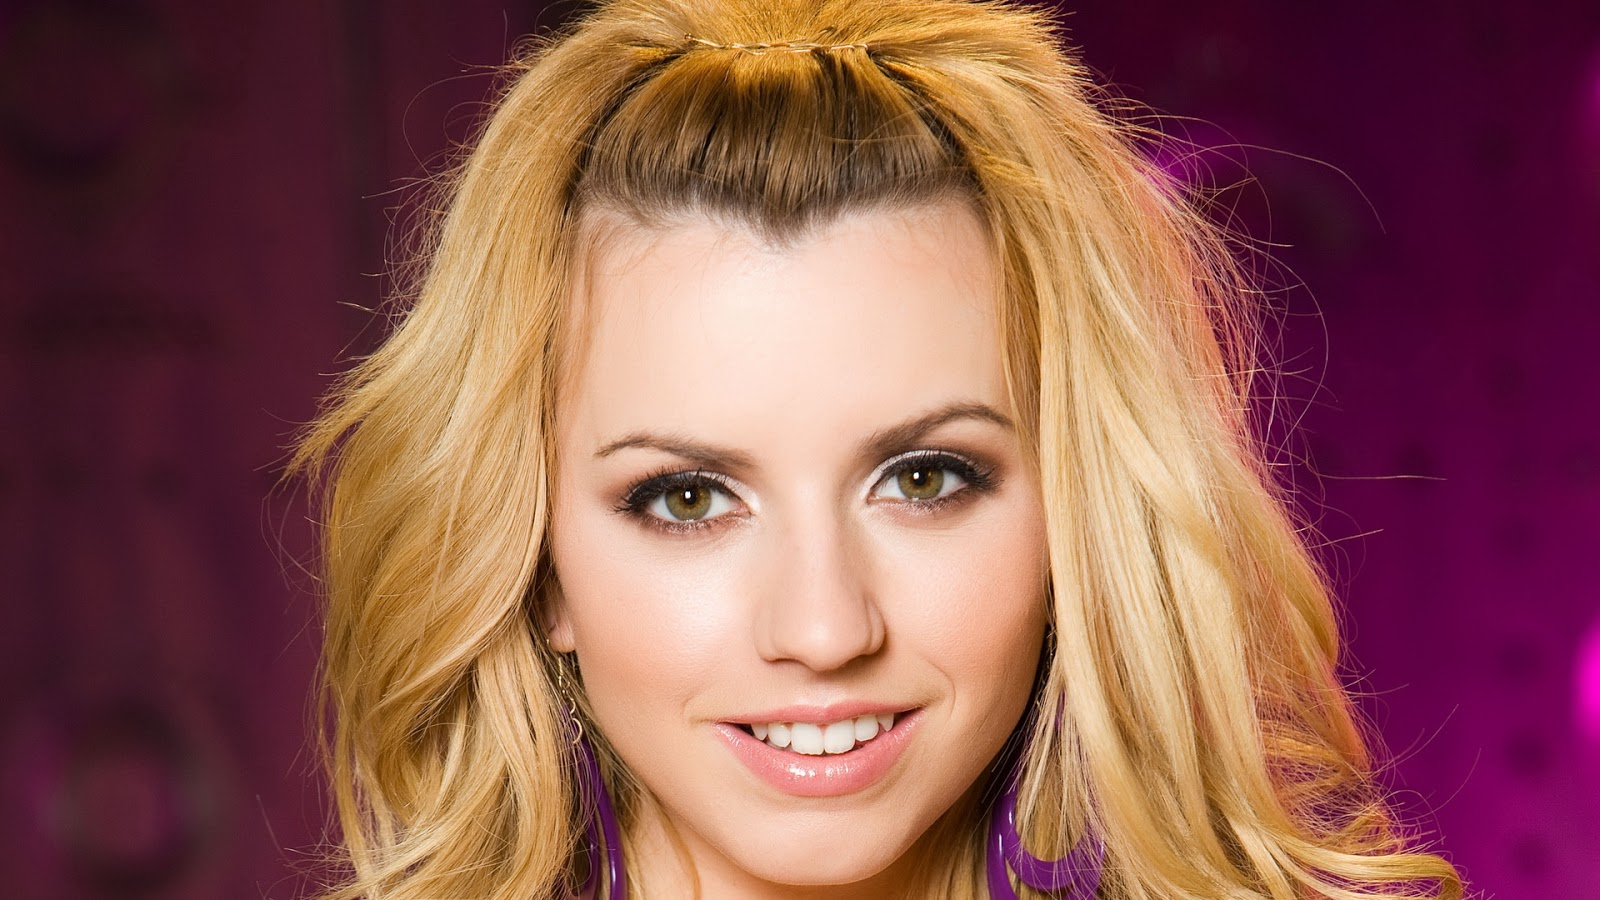 lexi belle celebrity hd wallpaper